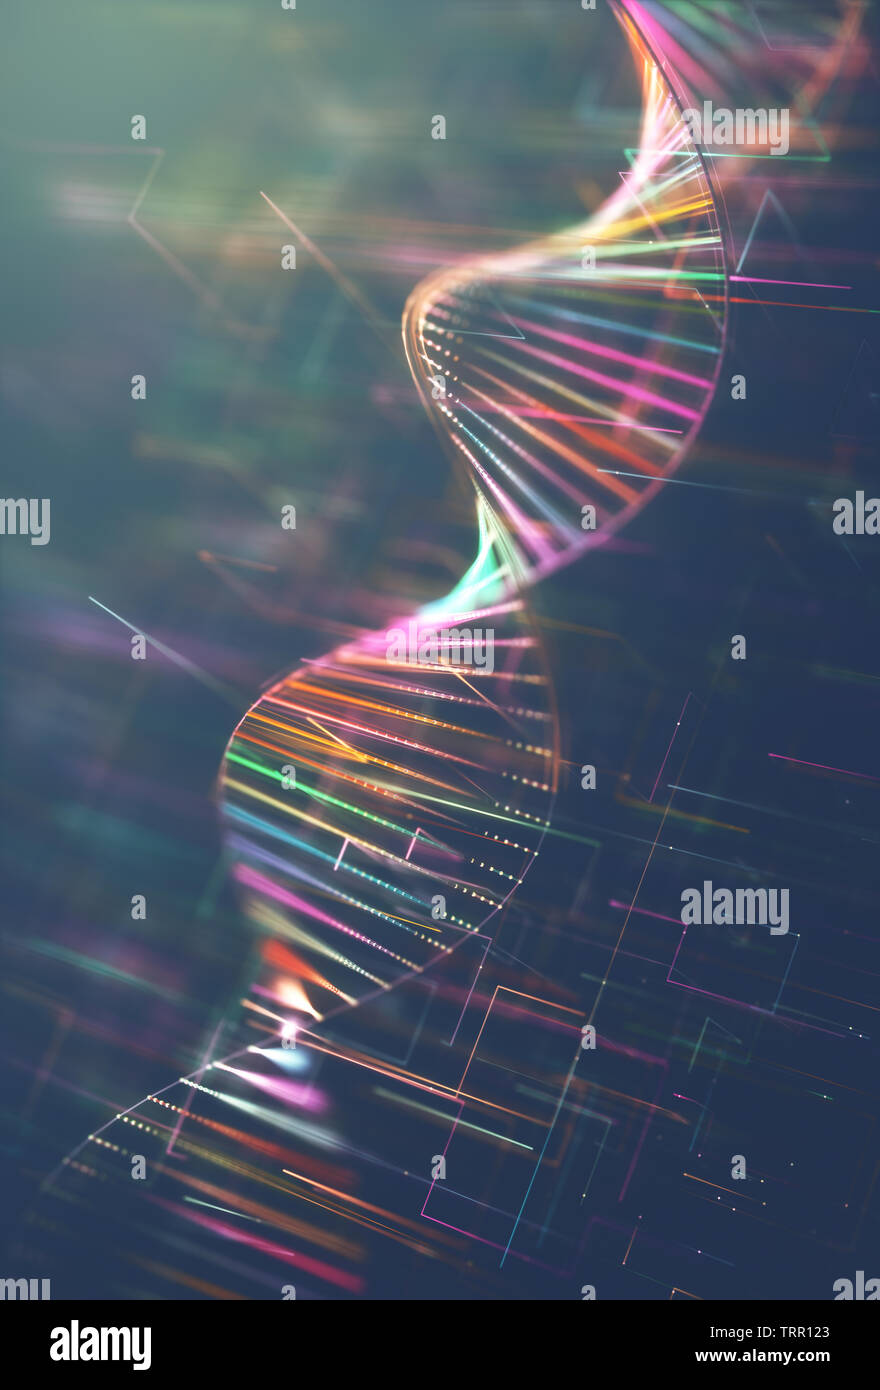 Image of genetic codes DNA. Concept image for use as background. Colored 3D illustration. - Stock Image